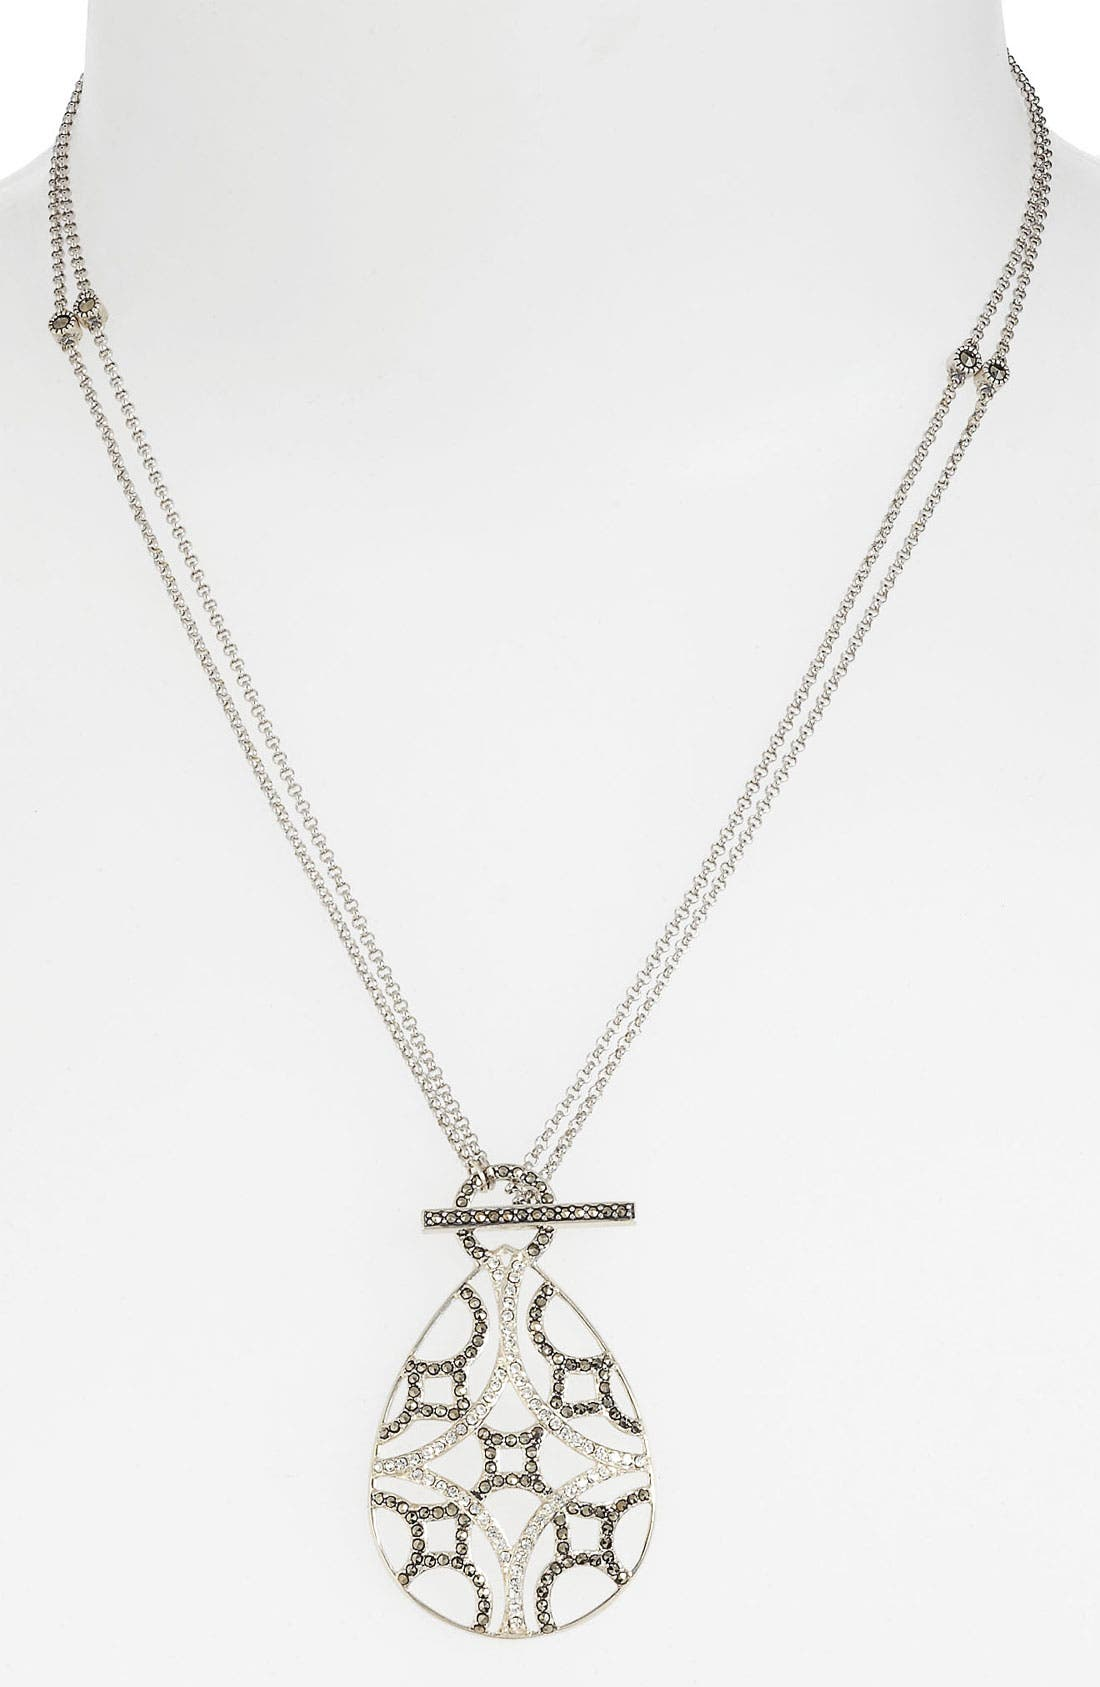 Alternate Image 1 Selected - Judith Jack 'Turq Matrix' Convertible Pendant Necklace